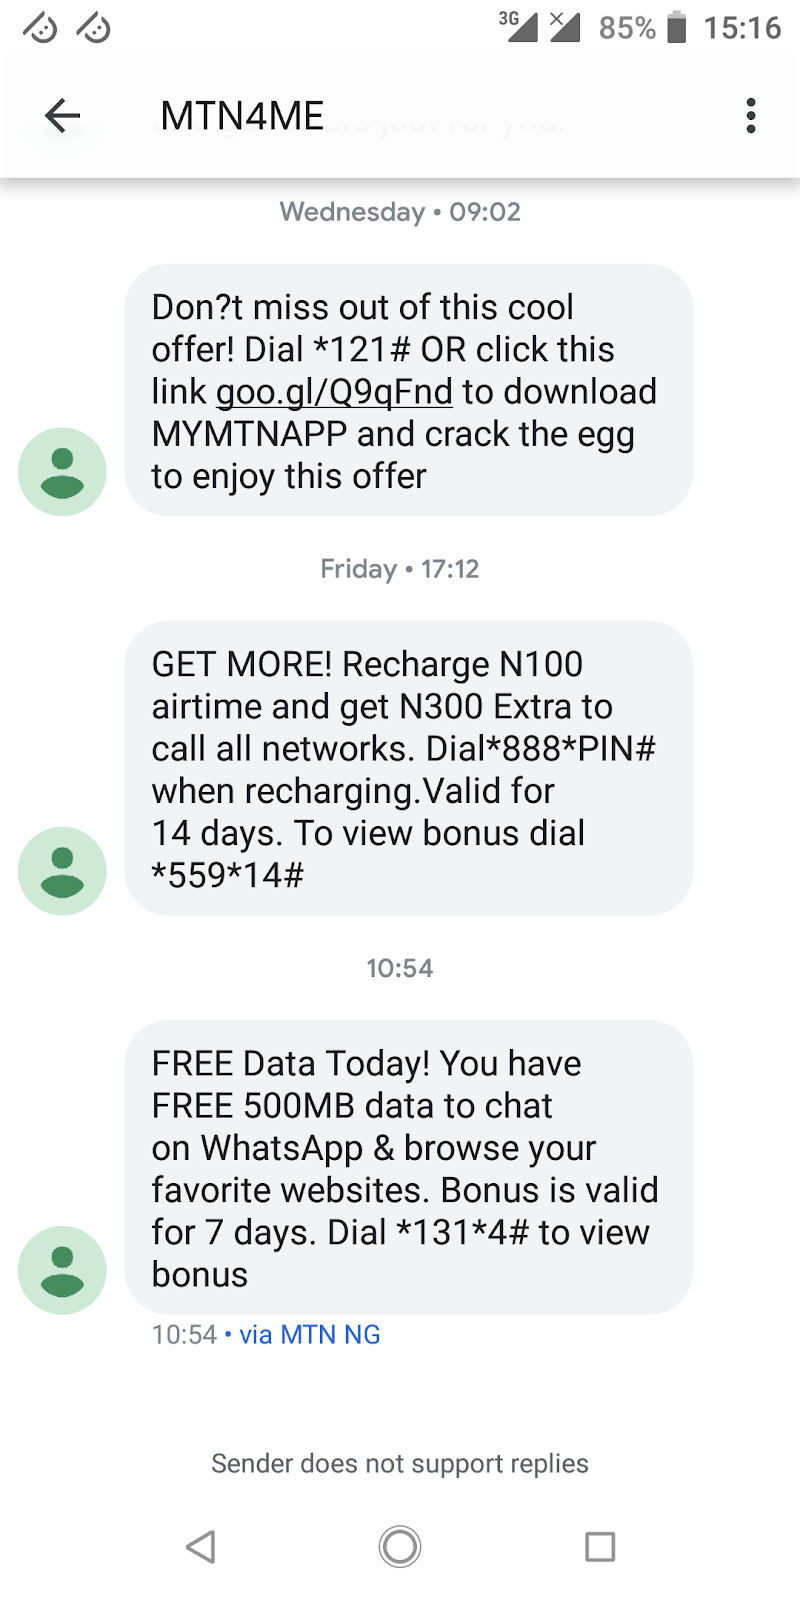 How to get free Mtn 500MB check for details | Naijakind Blog